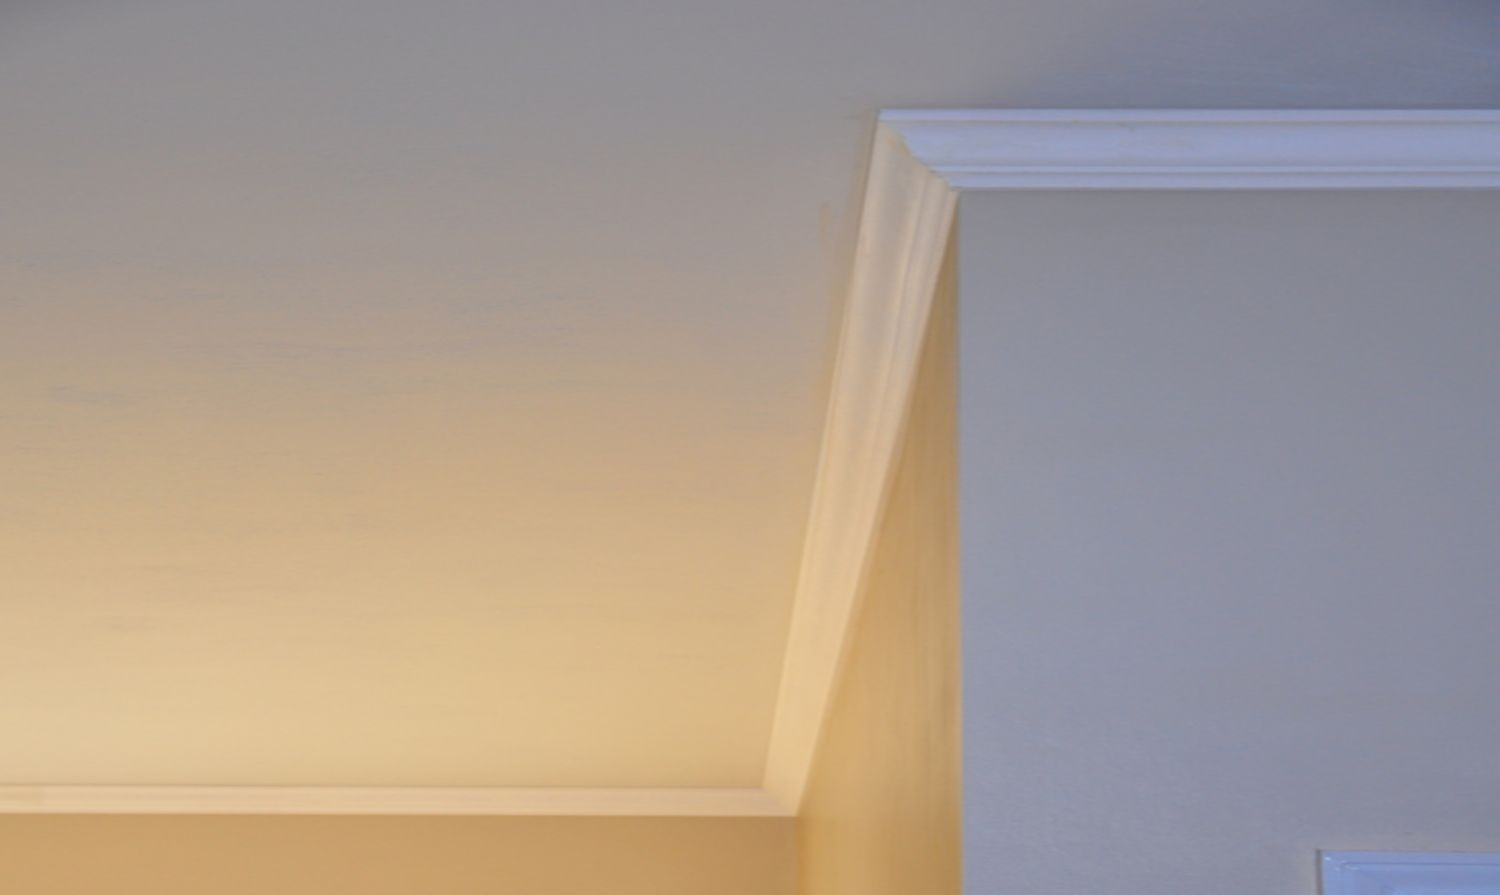 Ideas for Unique Uses of Crown Molding